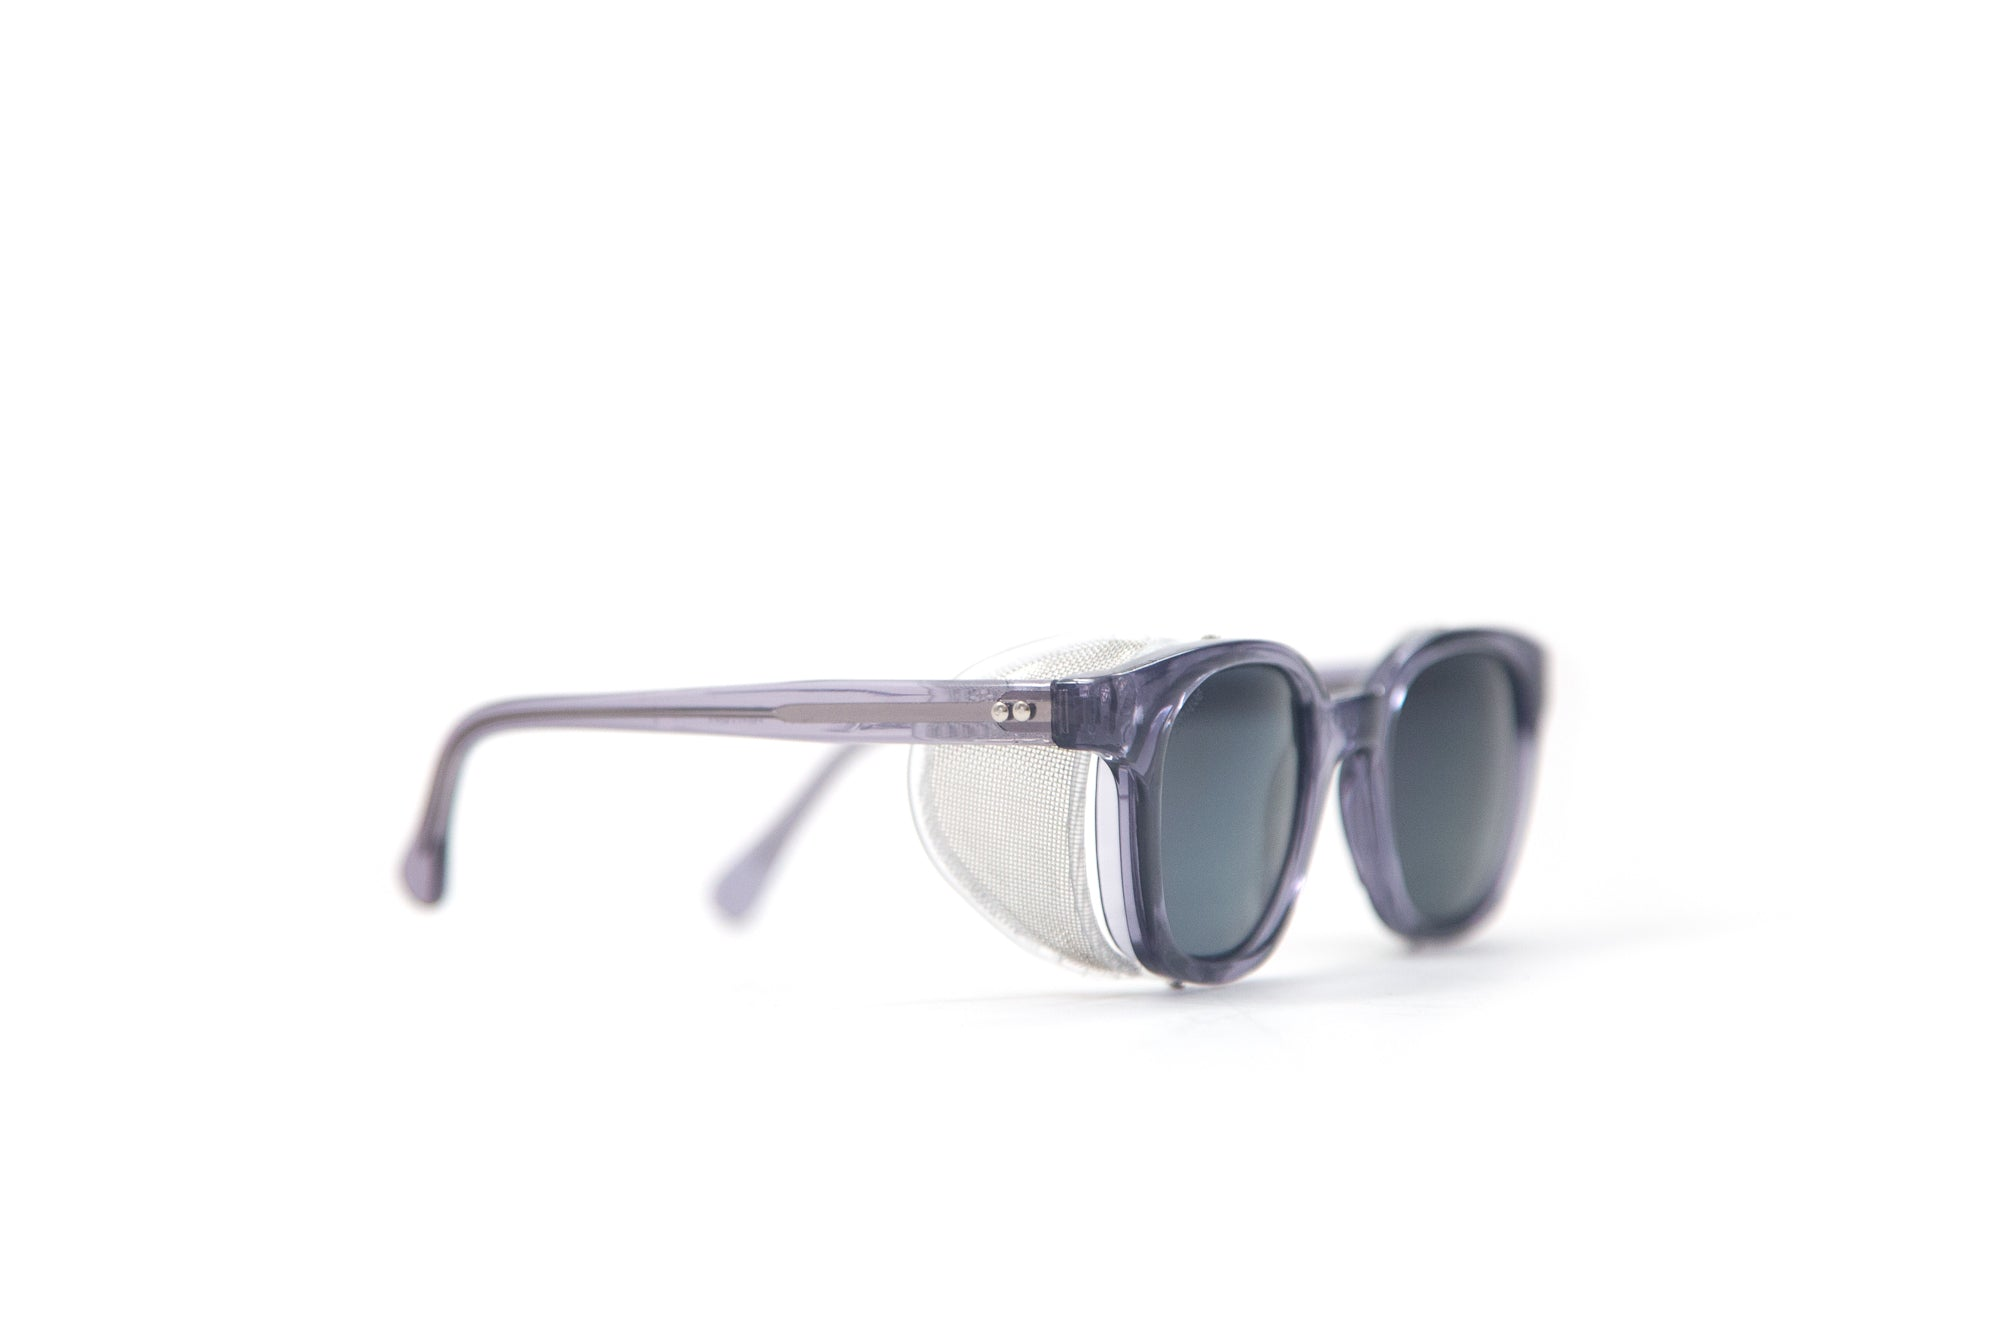 Tinted Vintage Safety Glasses - Apparel and Accessories - Prism Supply